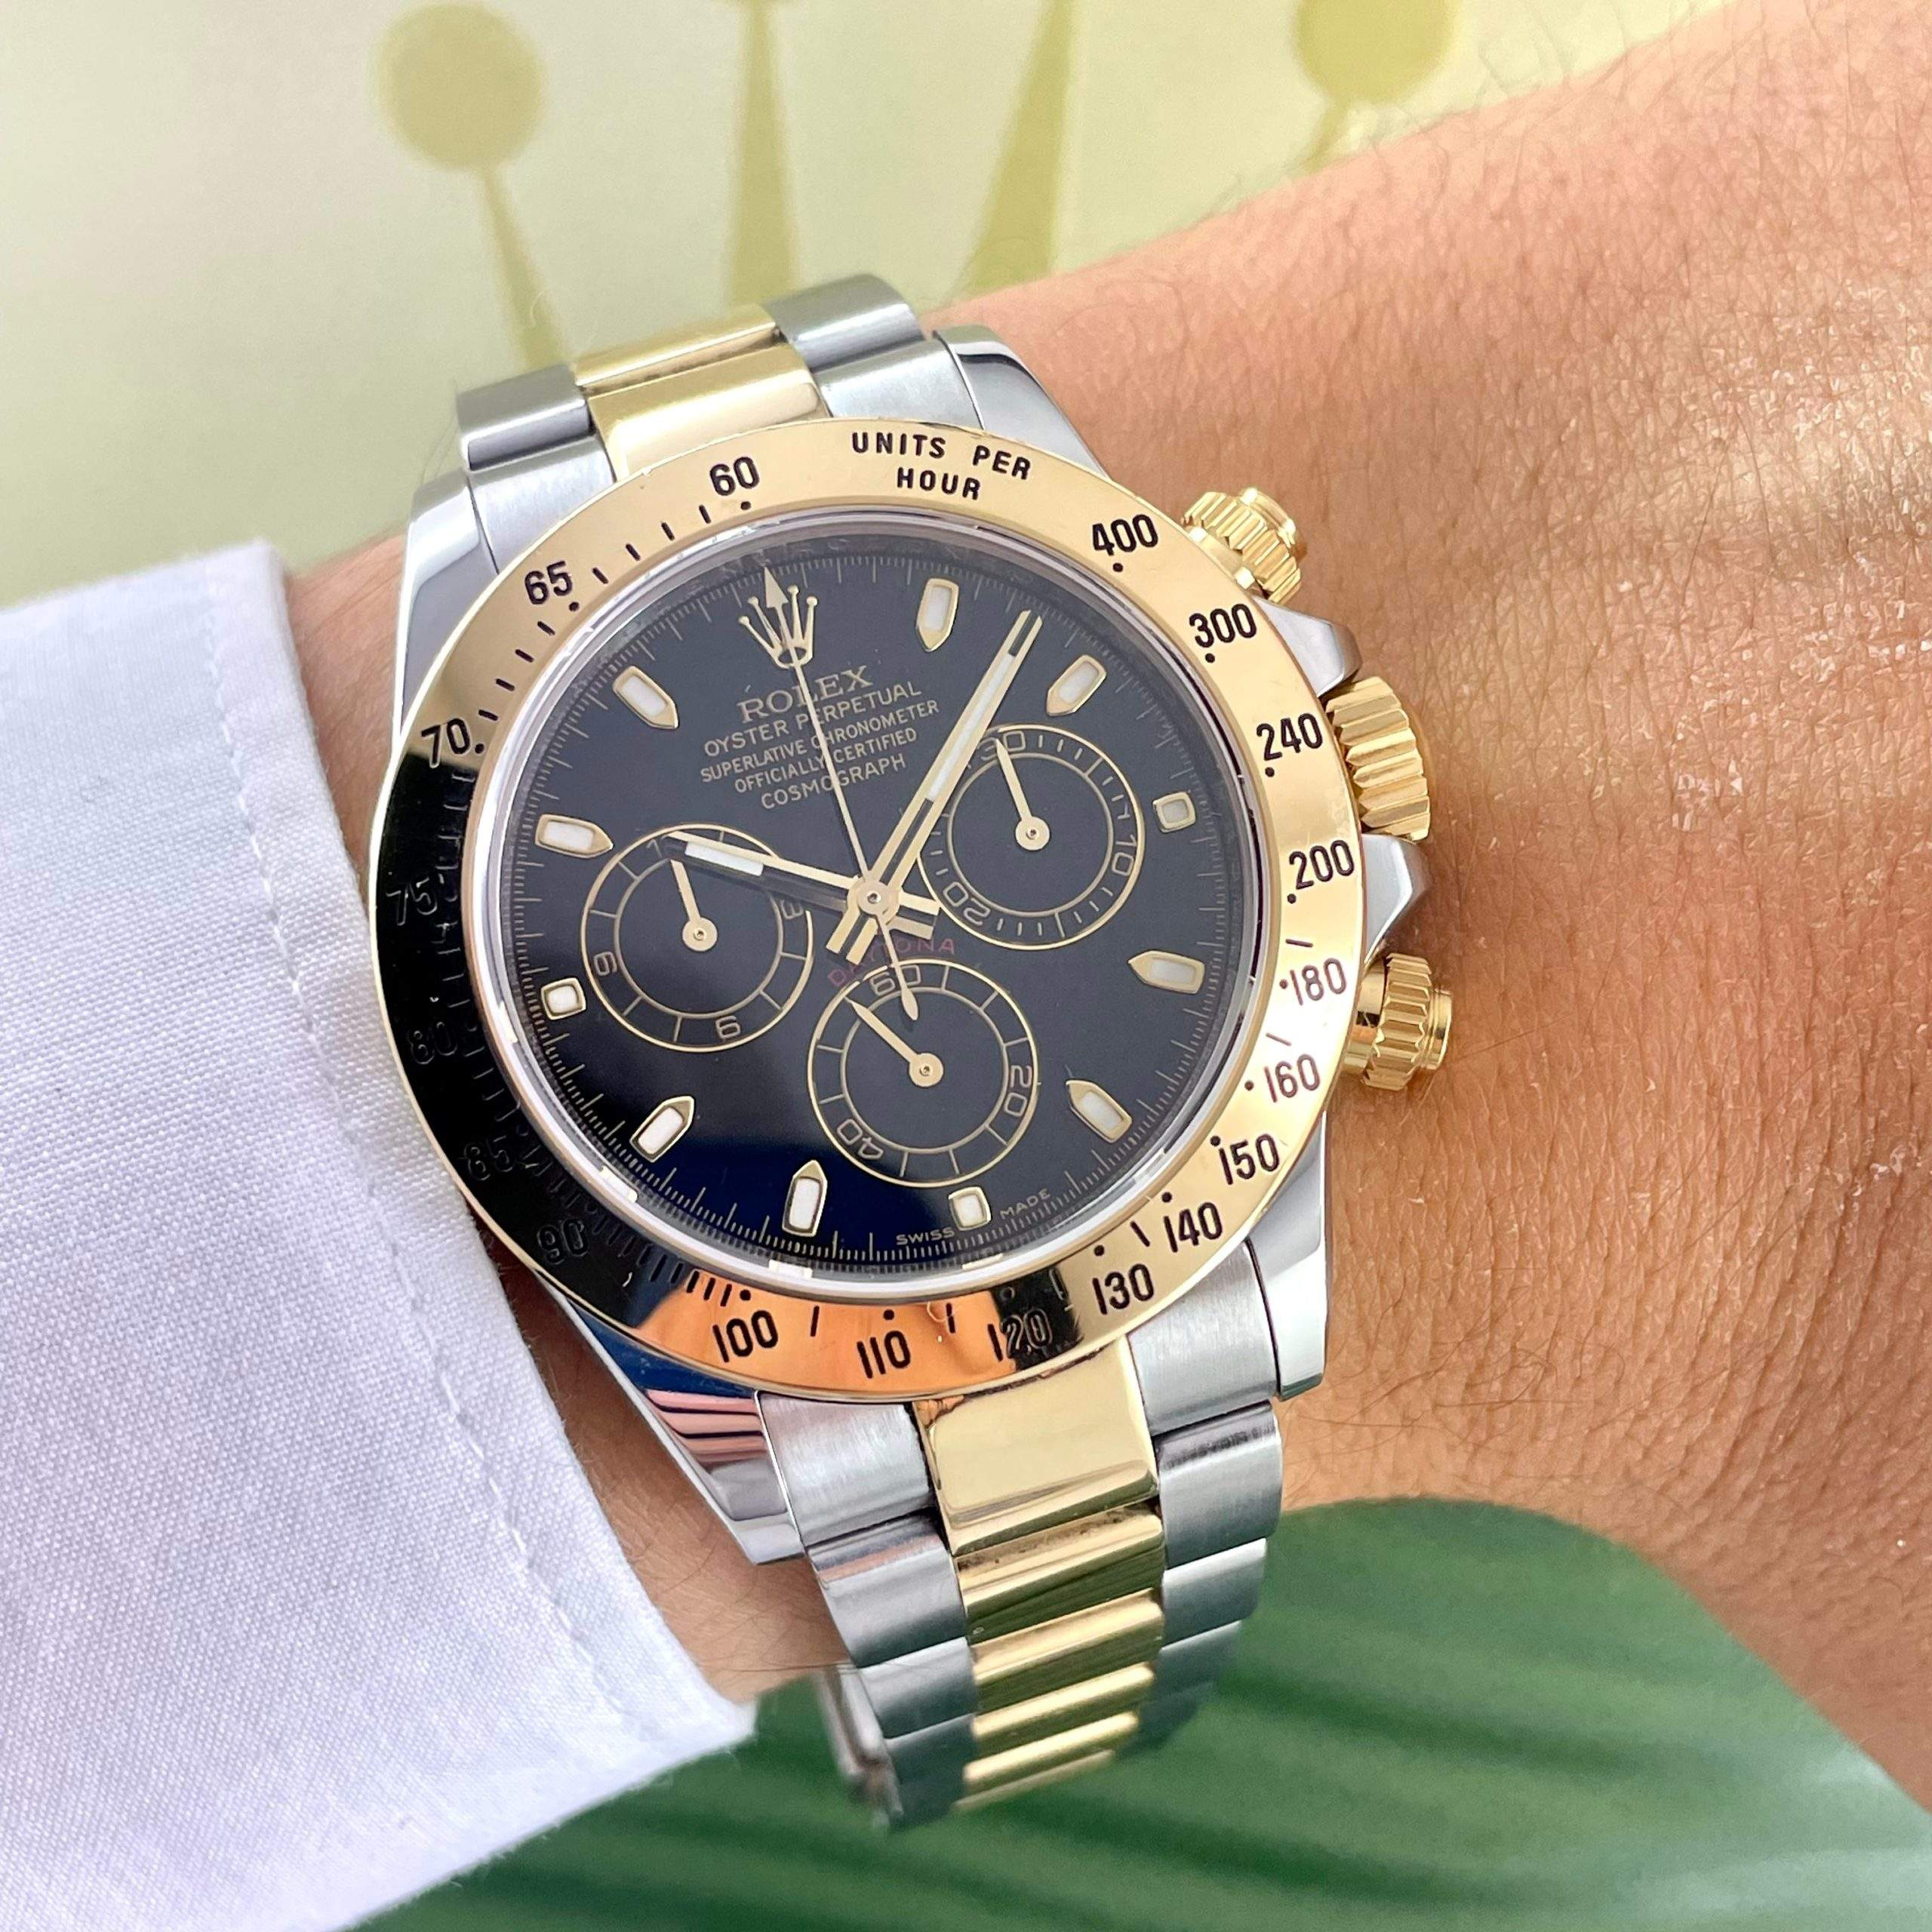 Elegant and eye-catching: the two-tone Daytona ref. 116523 with a black dial